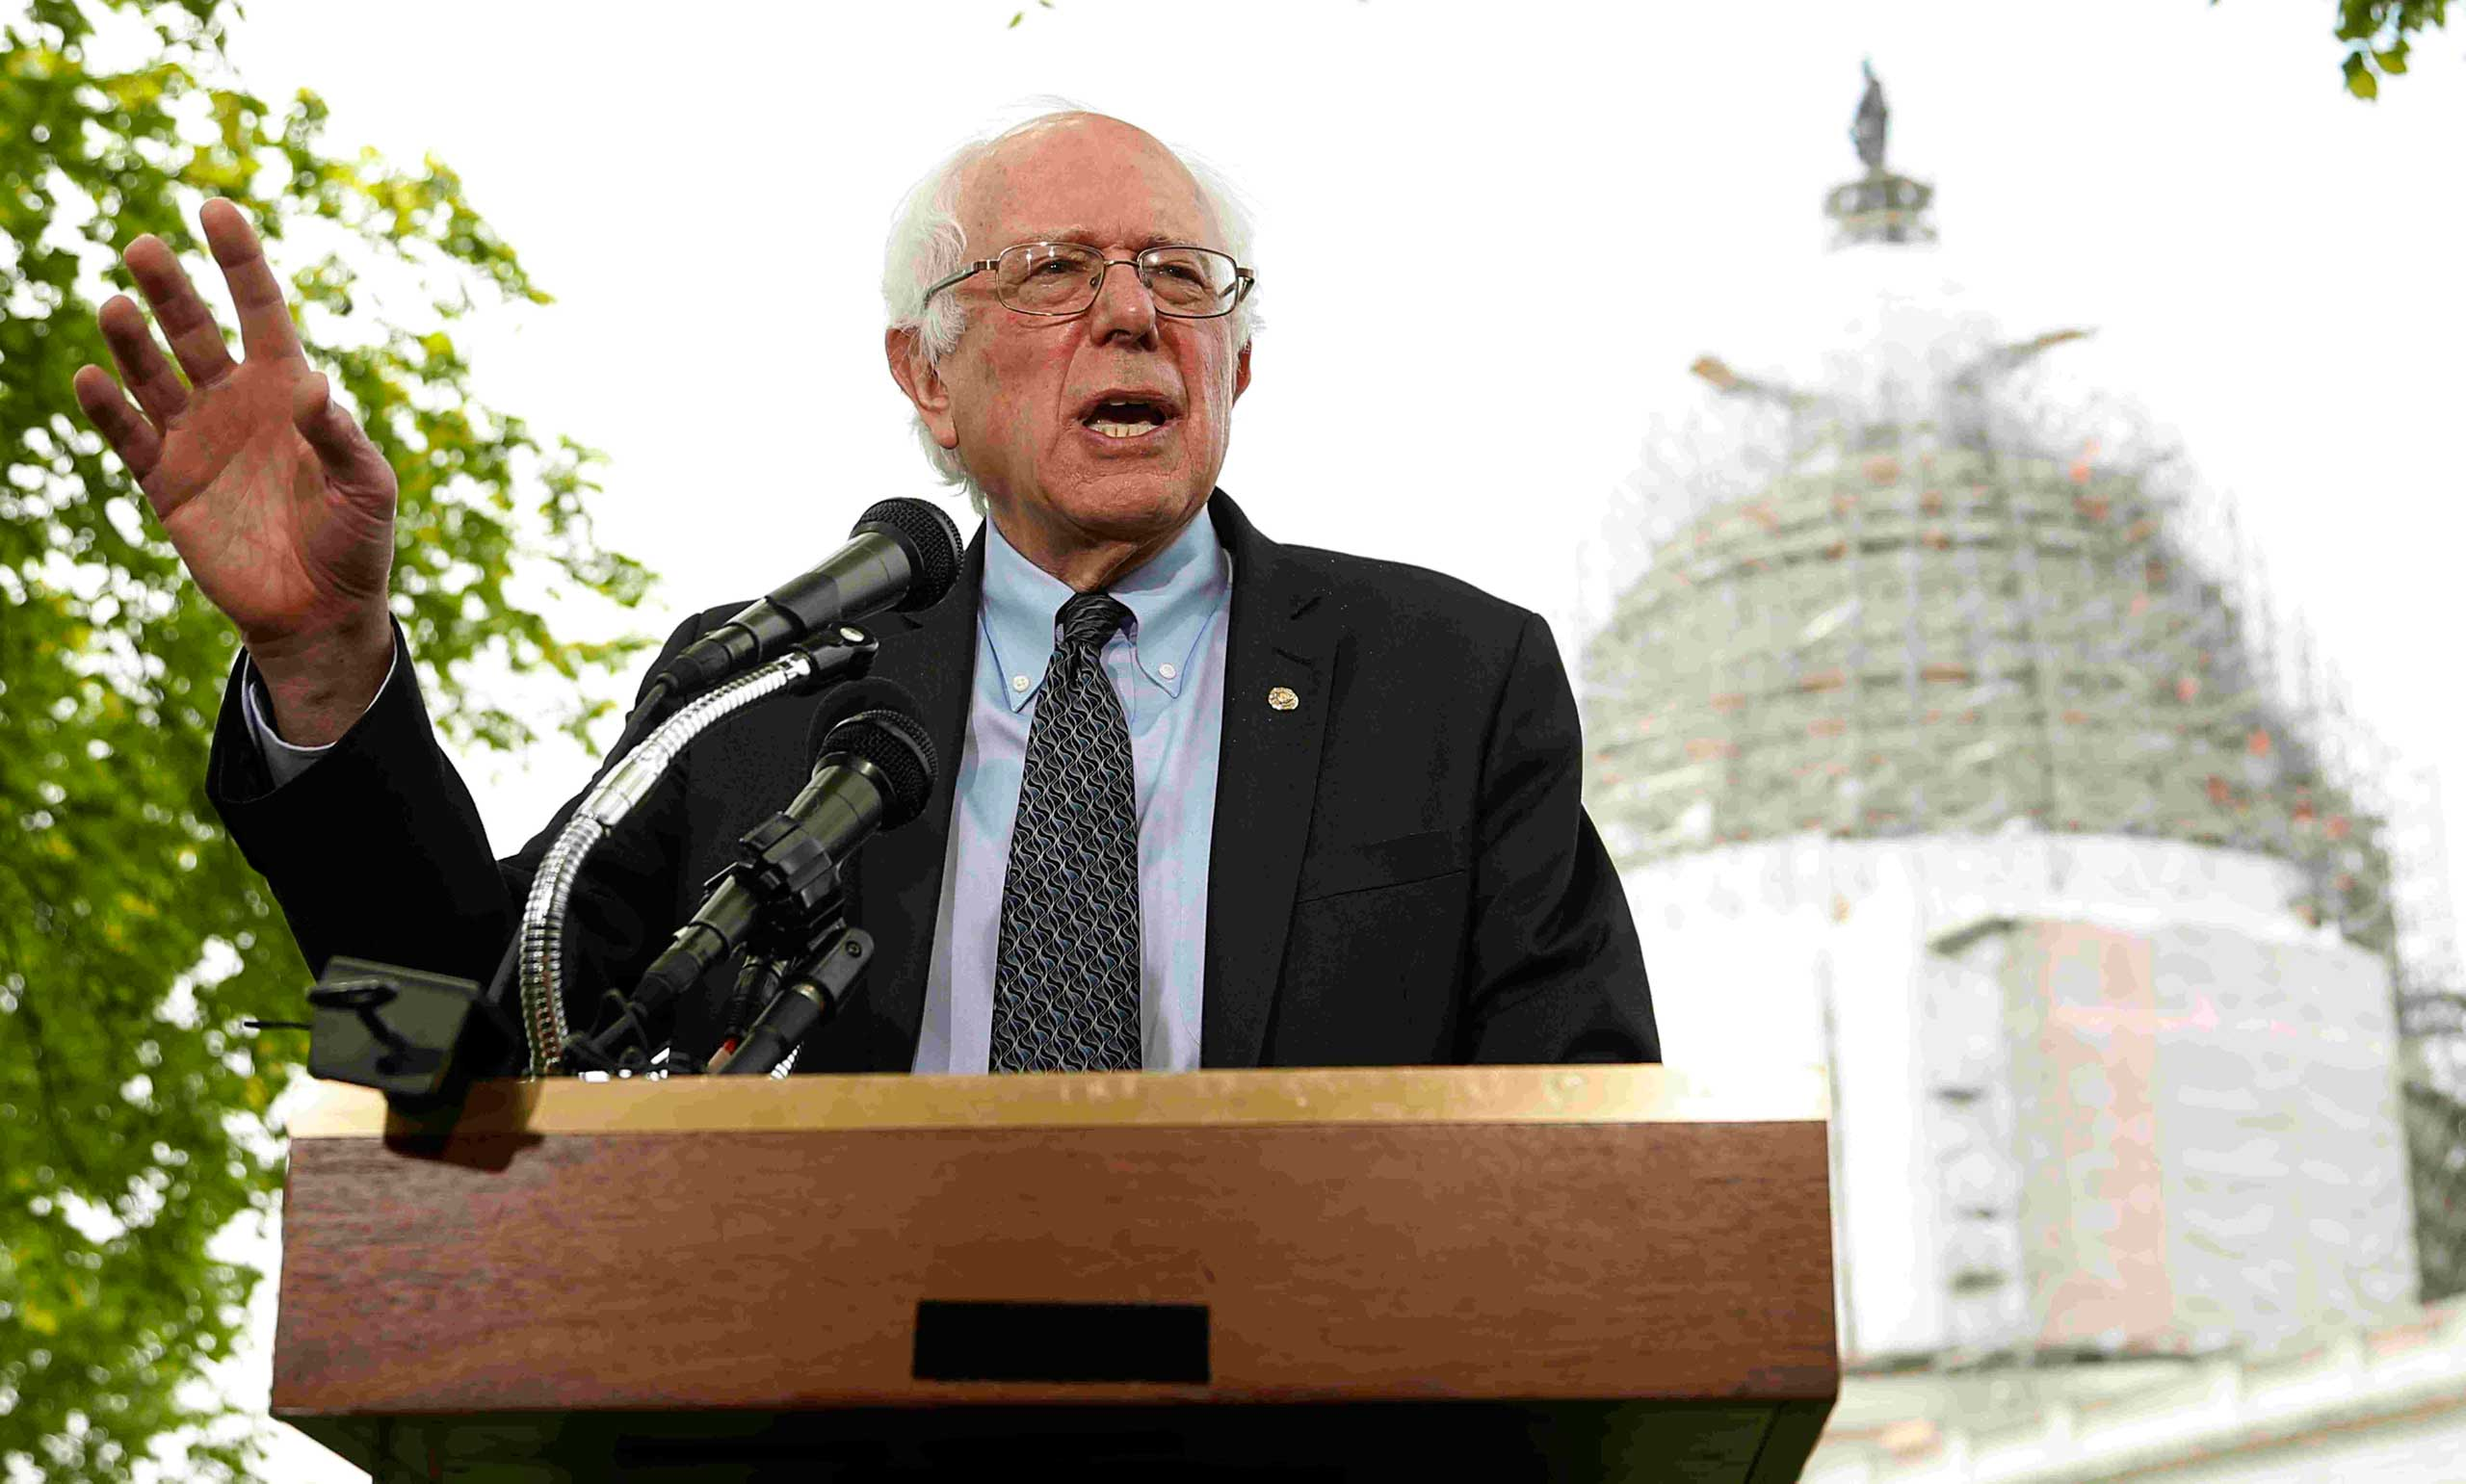 Vermont Sen. Bernie Sanders announced his bid for the Democratic nomination across the street from the U.S. Capitol on April 30, 2015. The backdrop was unusual, since most candidates rail against Washington.